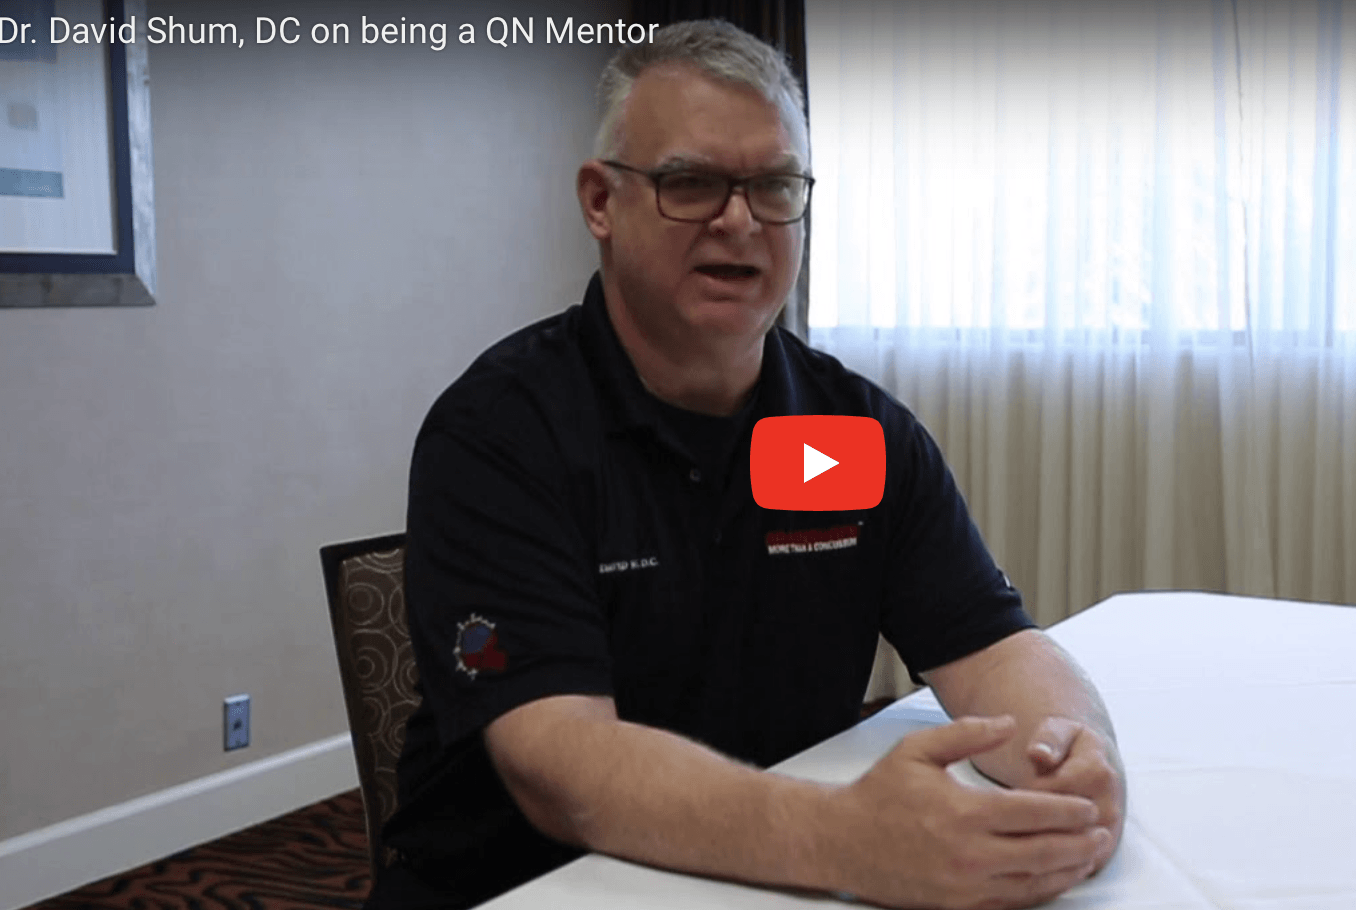 Playing an important role as a QN Mentor